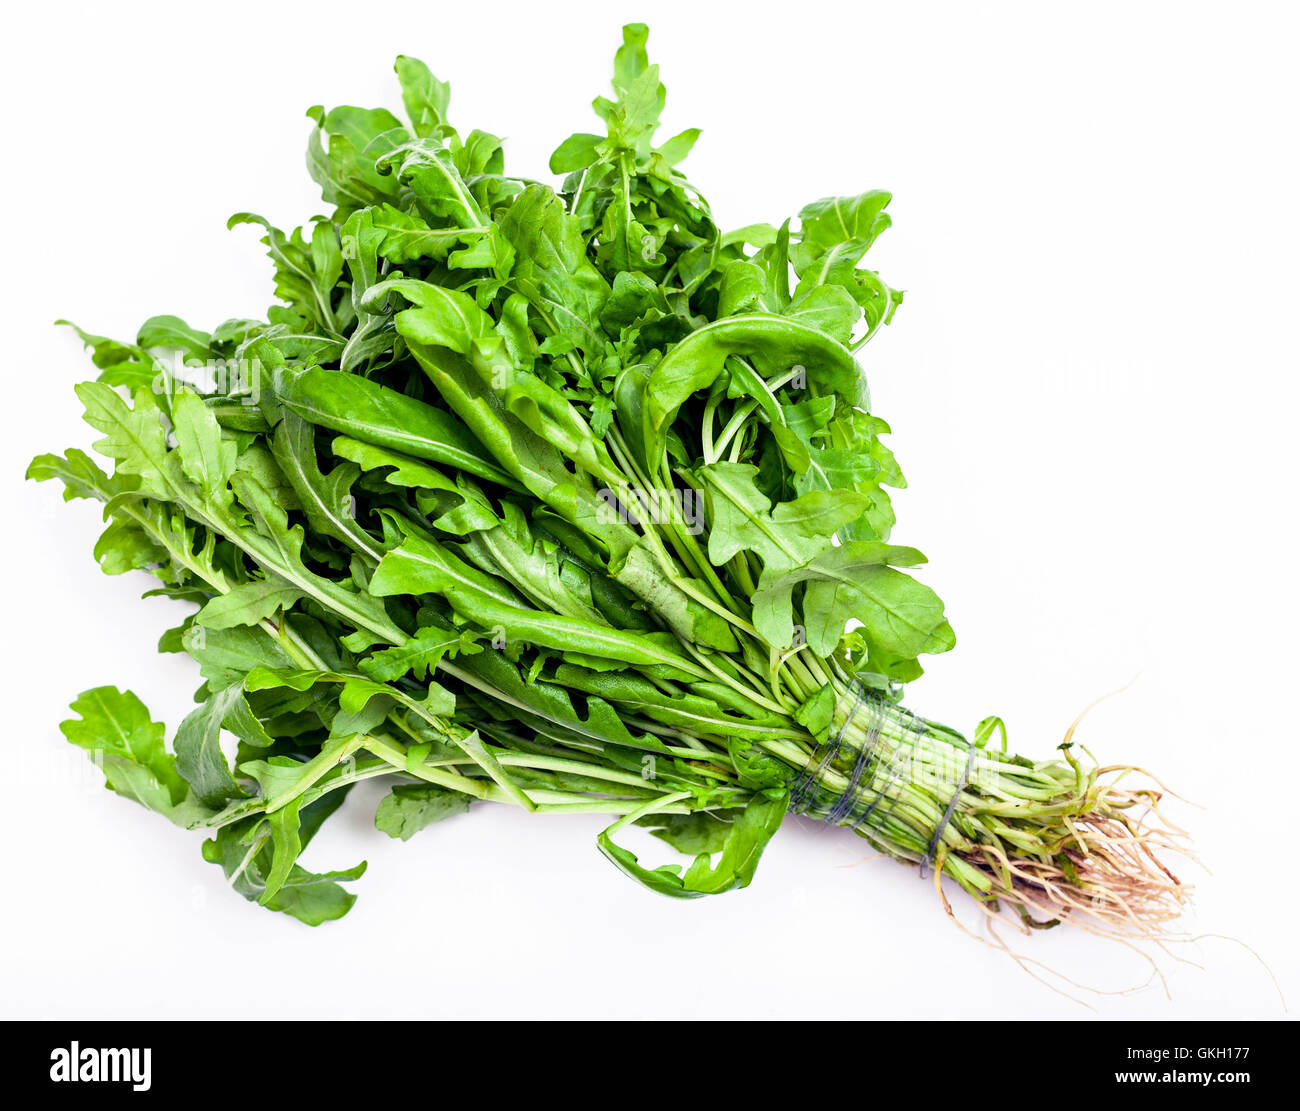 Stock Photo Bunch Of Fresh Cut Green Salad Rocket Herb On White Background